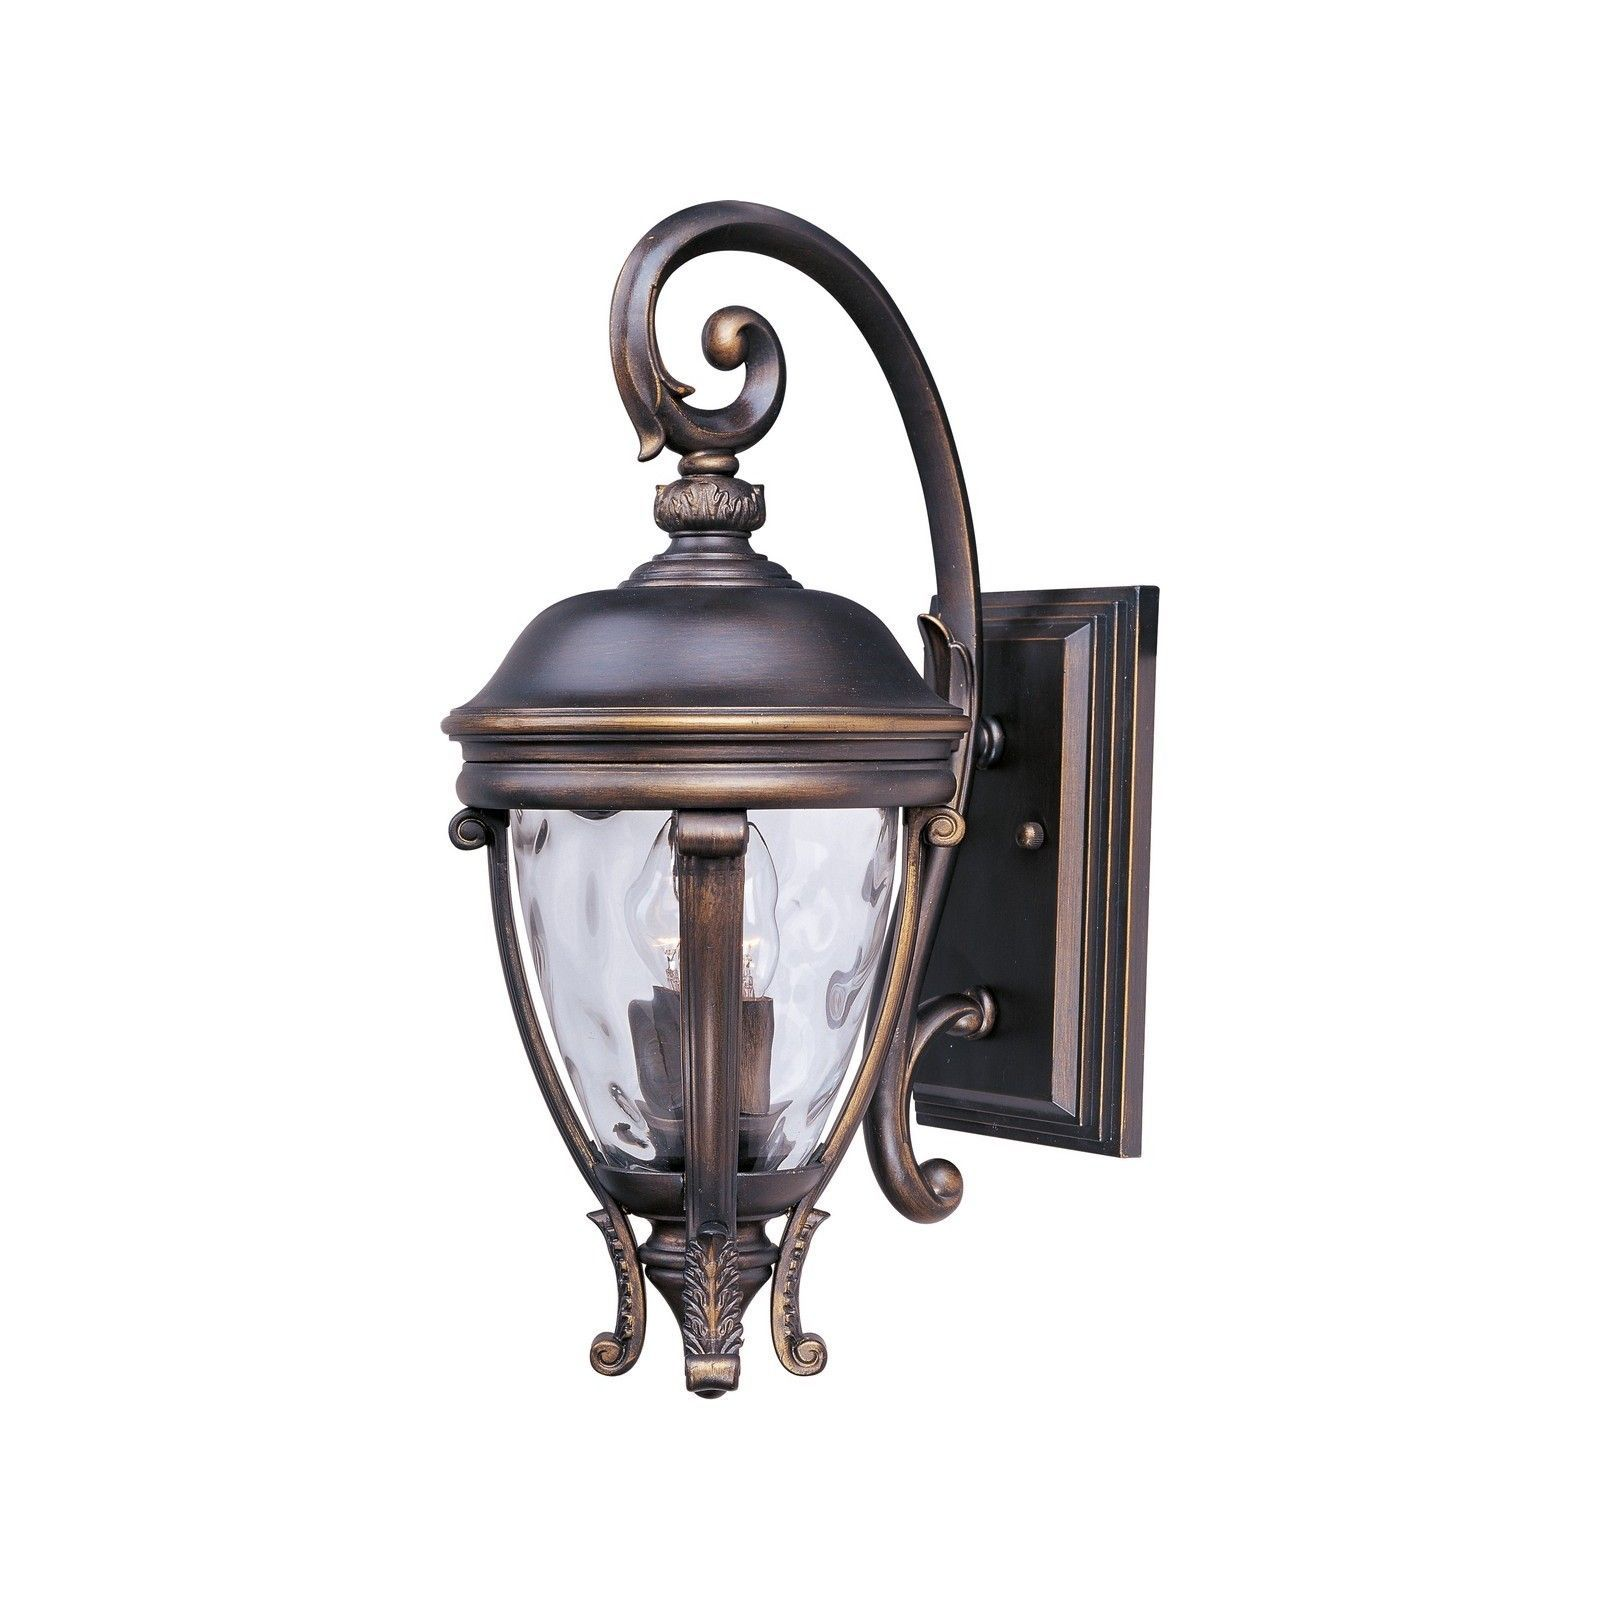 Maxim Lighting S Camden Vx Collection Is Made With Vivex A Material Twice The Strength Of Resin Non Corrosive Uv Resistant And Backed Limited